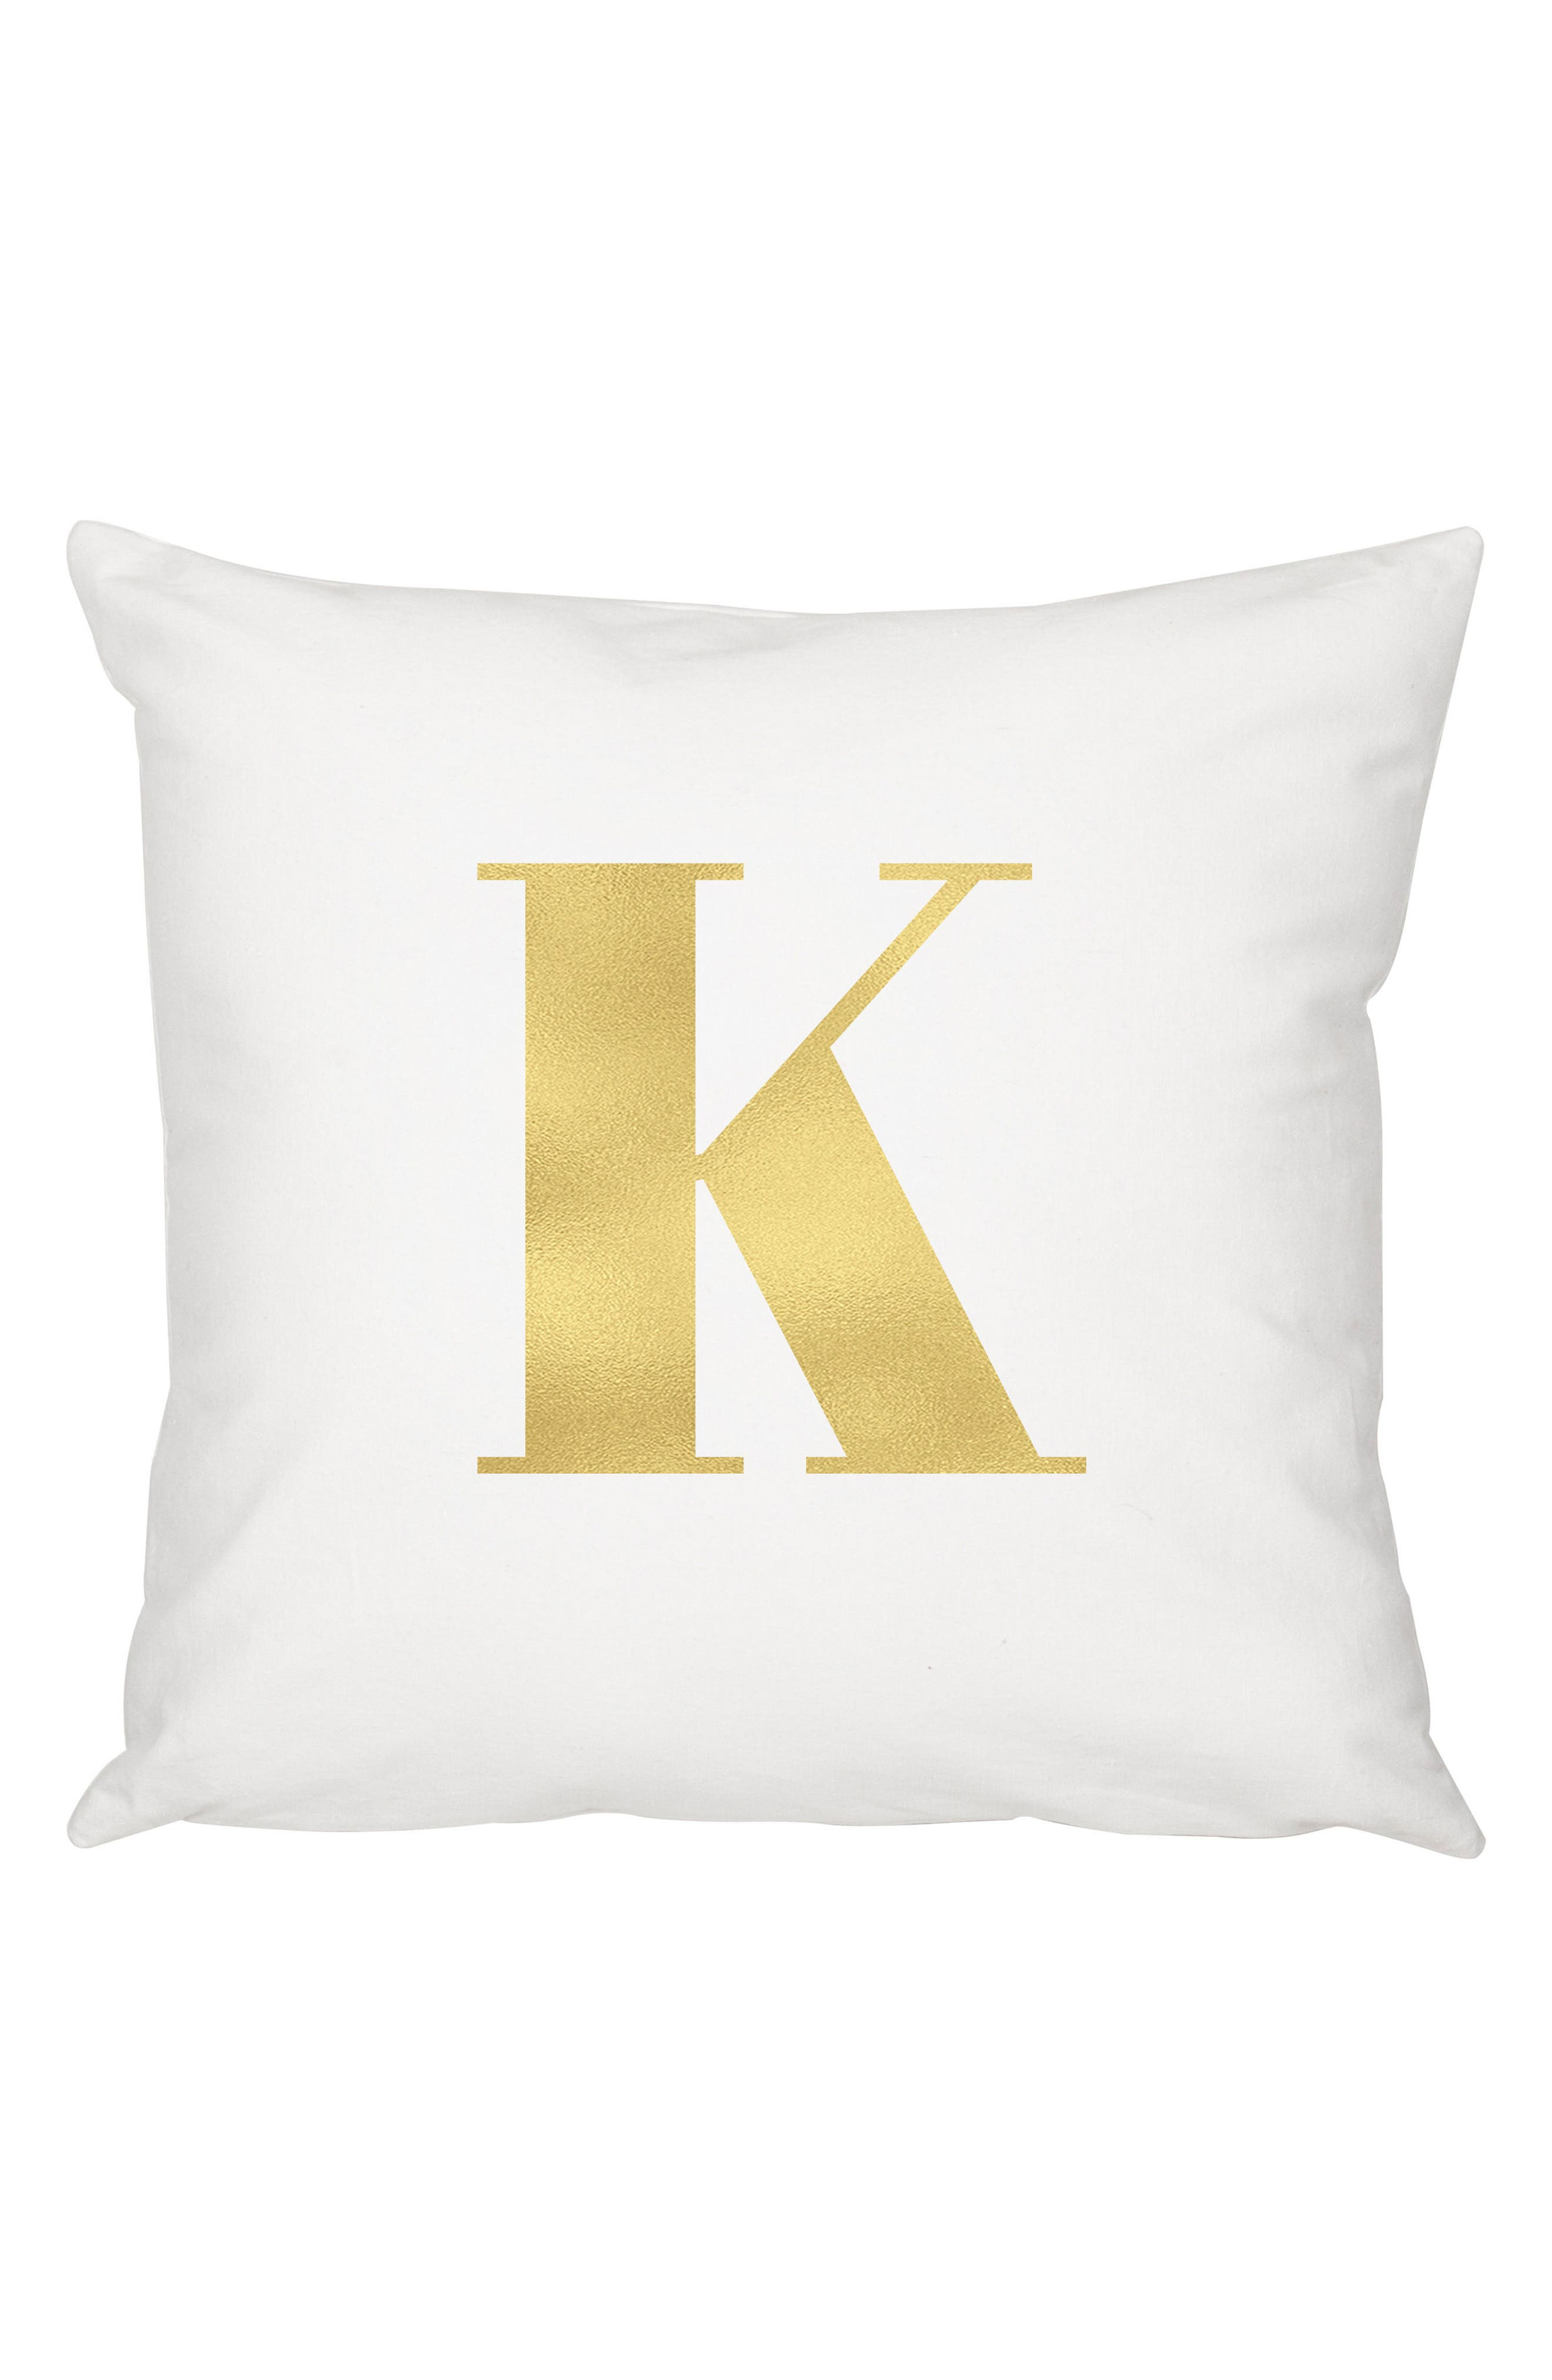 Cathy's Concepts Monogram Accent Pillow